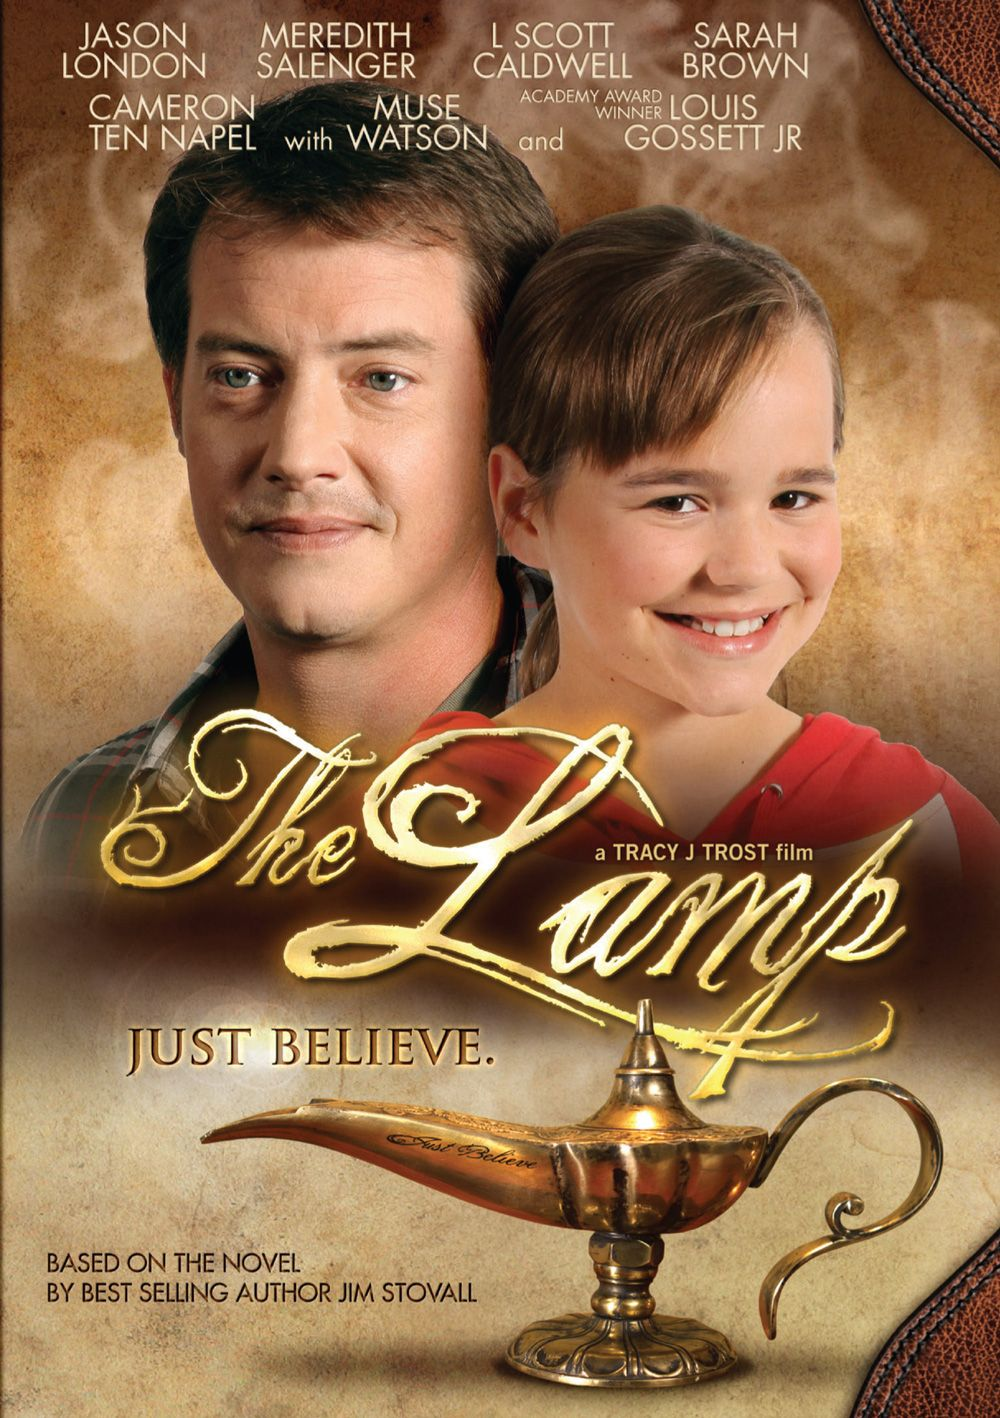 The Lamp - Christian Movie/Film on DVD. http://www.christianfilmdatabase.com/review/the-lamp/